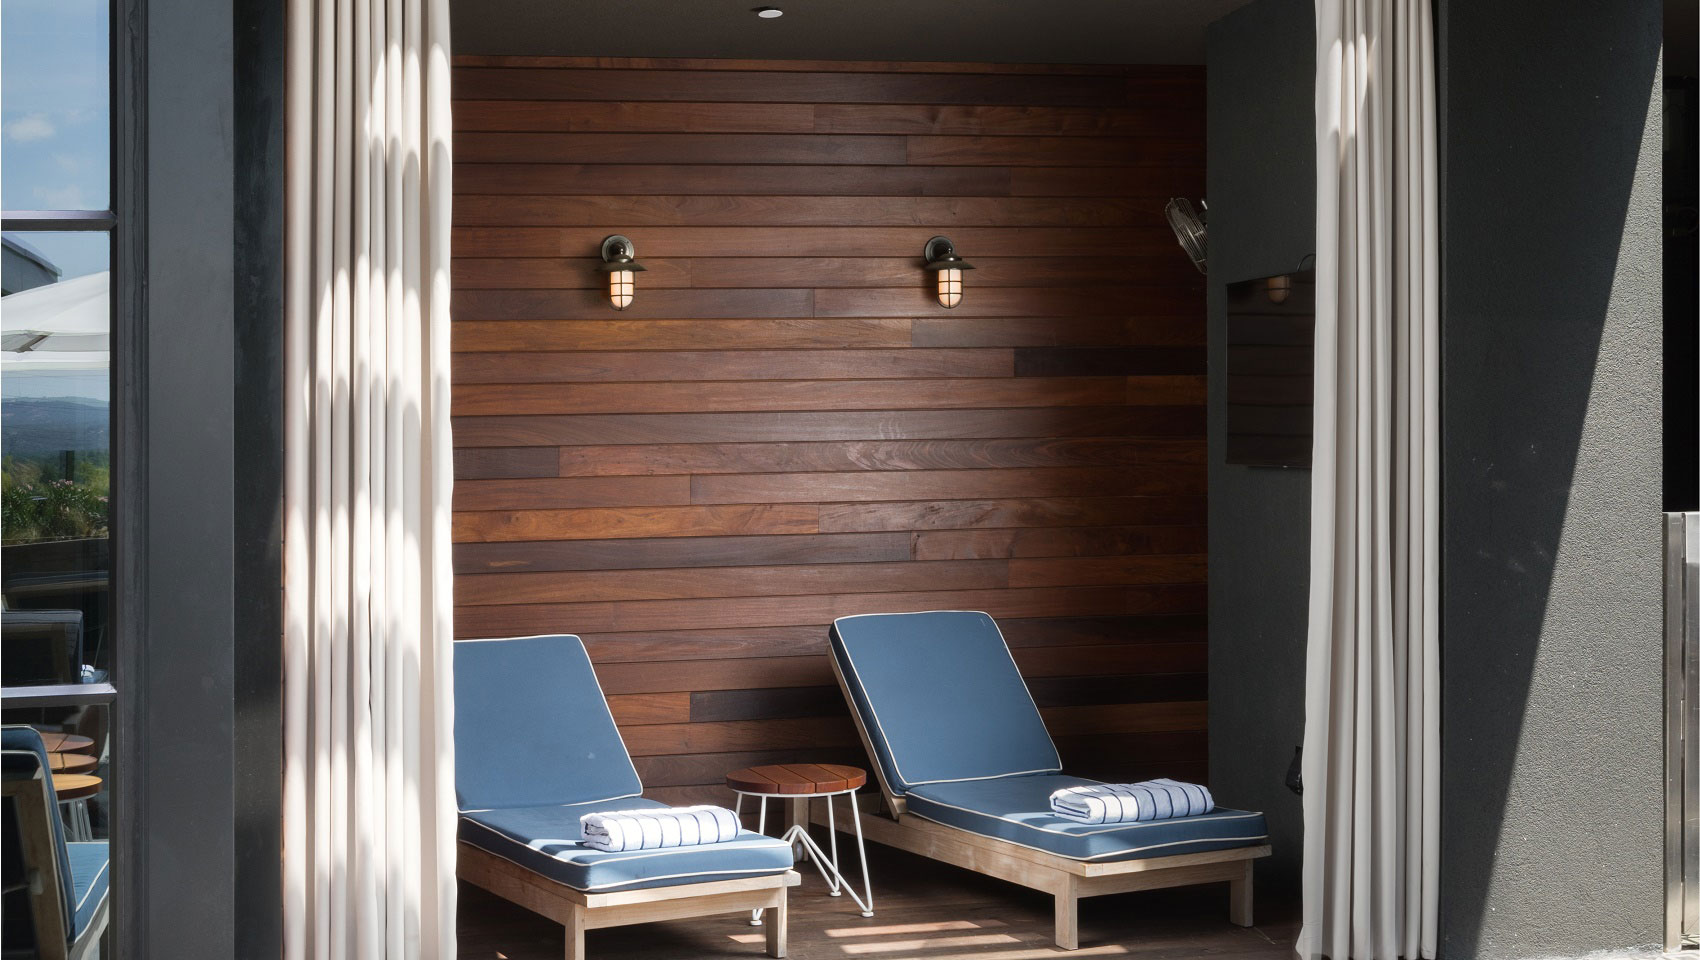 Hotel Van Zandt Austin Outdoor Pool lounge chairs in a cabana